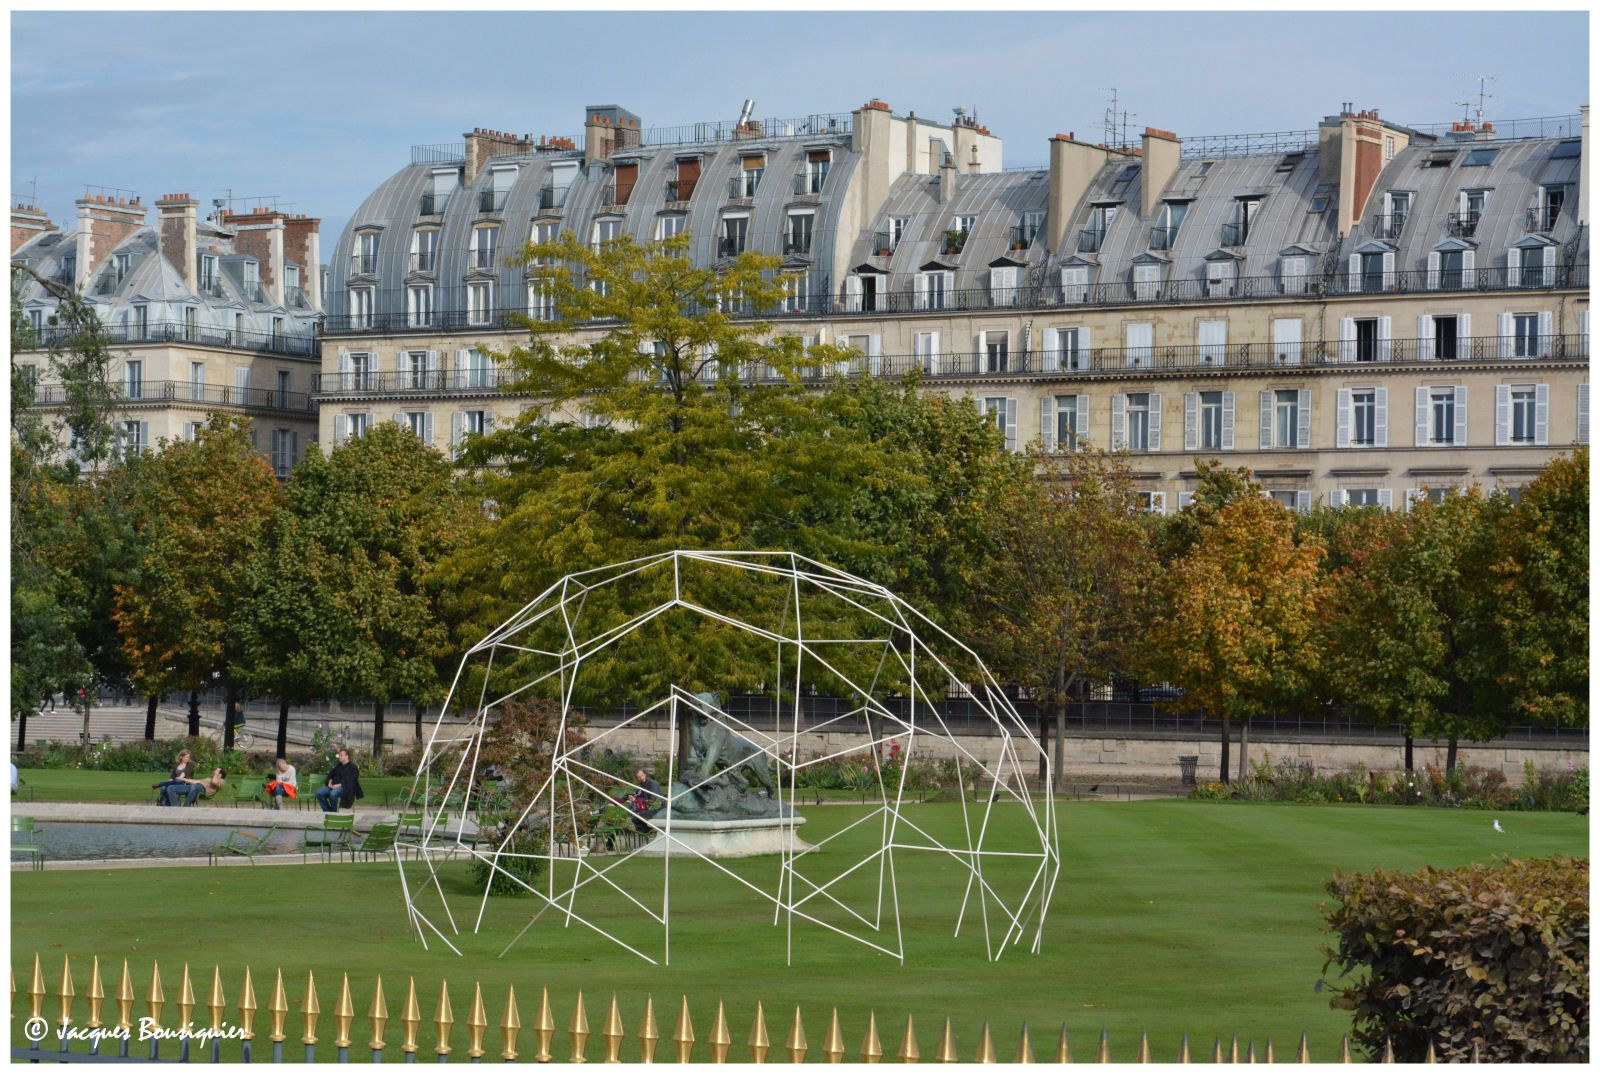 La fiac au jardin des tuileries art en images for Au jardin paris